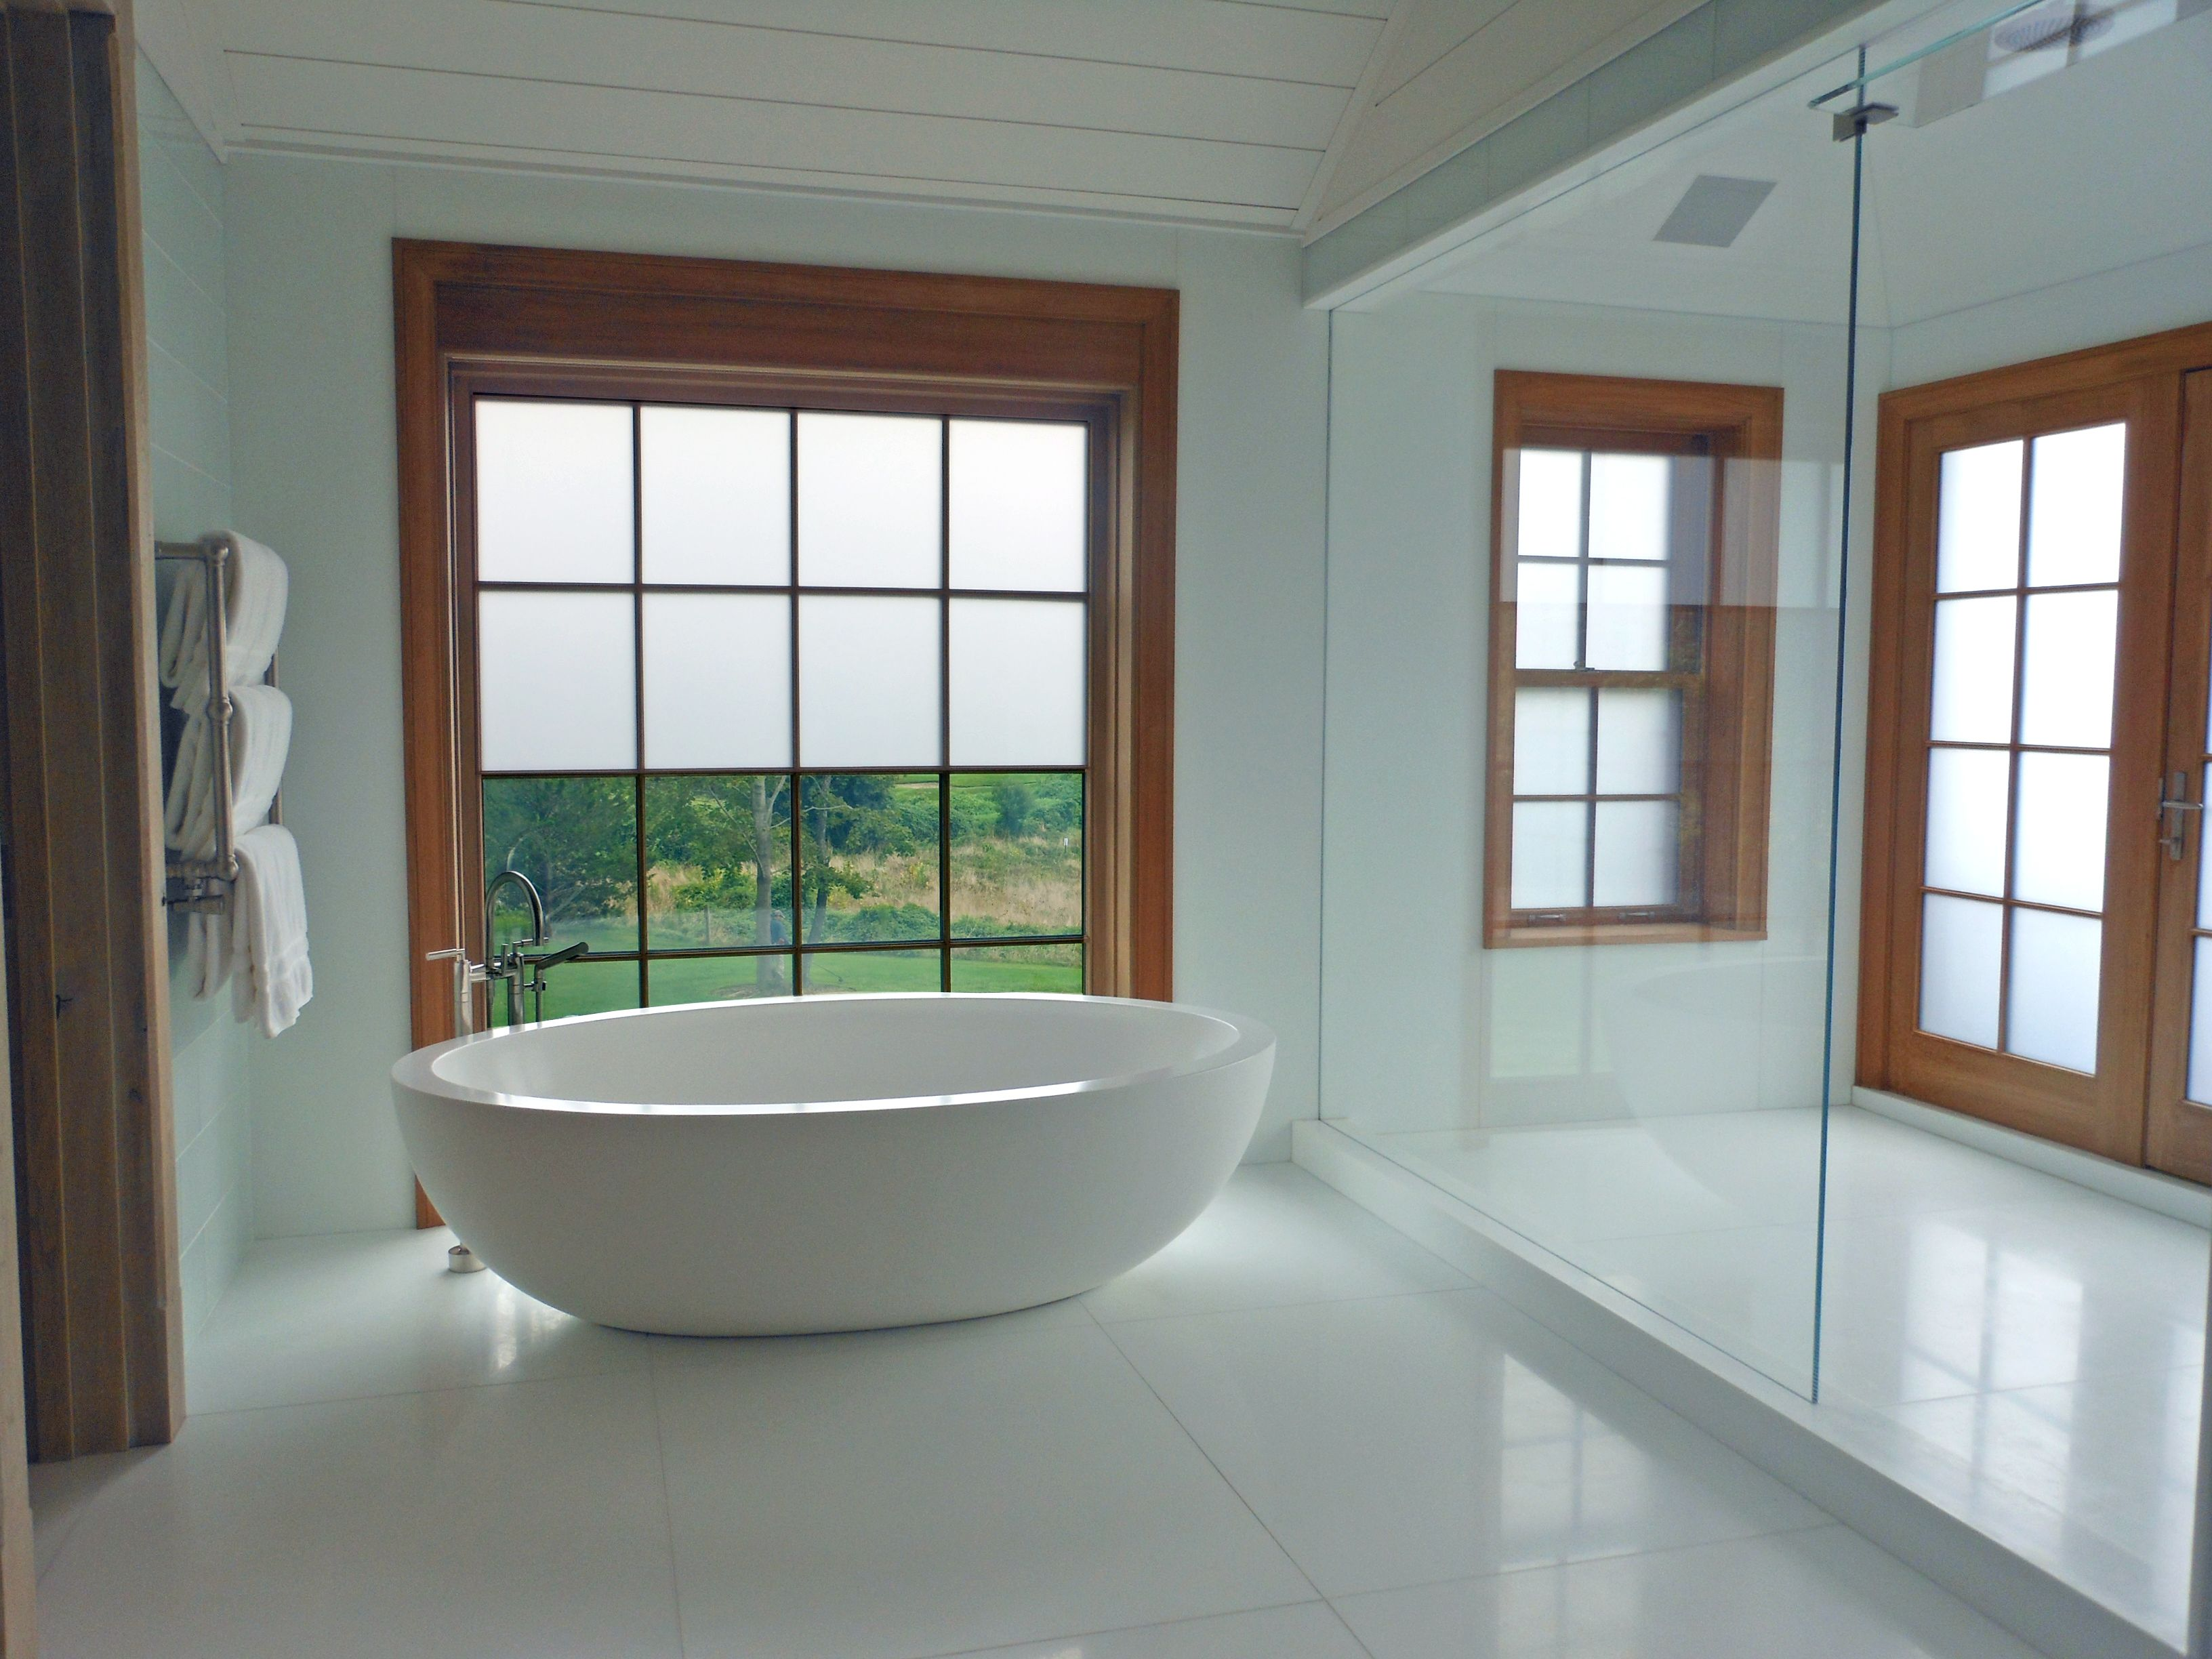 Electronic tint home windows variably controlled privacy glass switchable dynamic glazing innovative glass